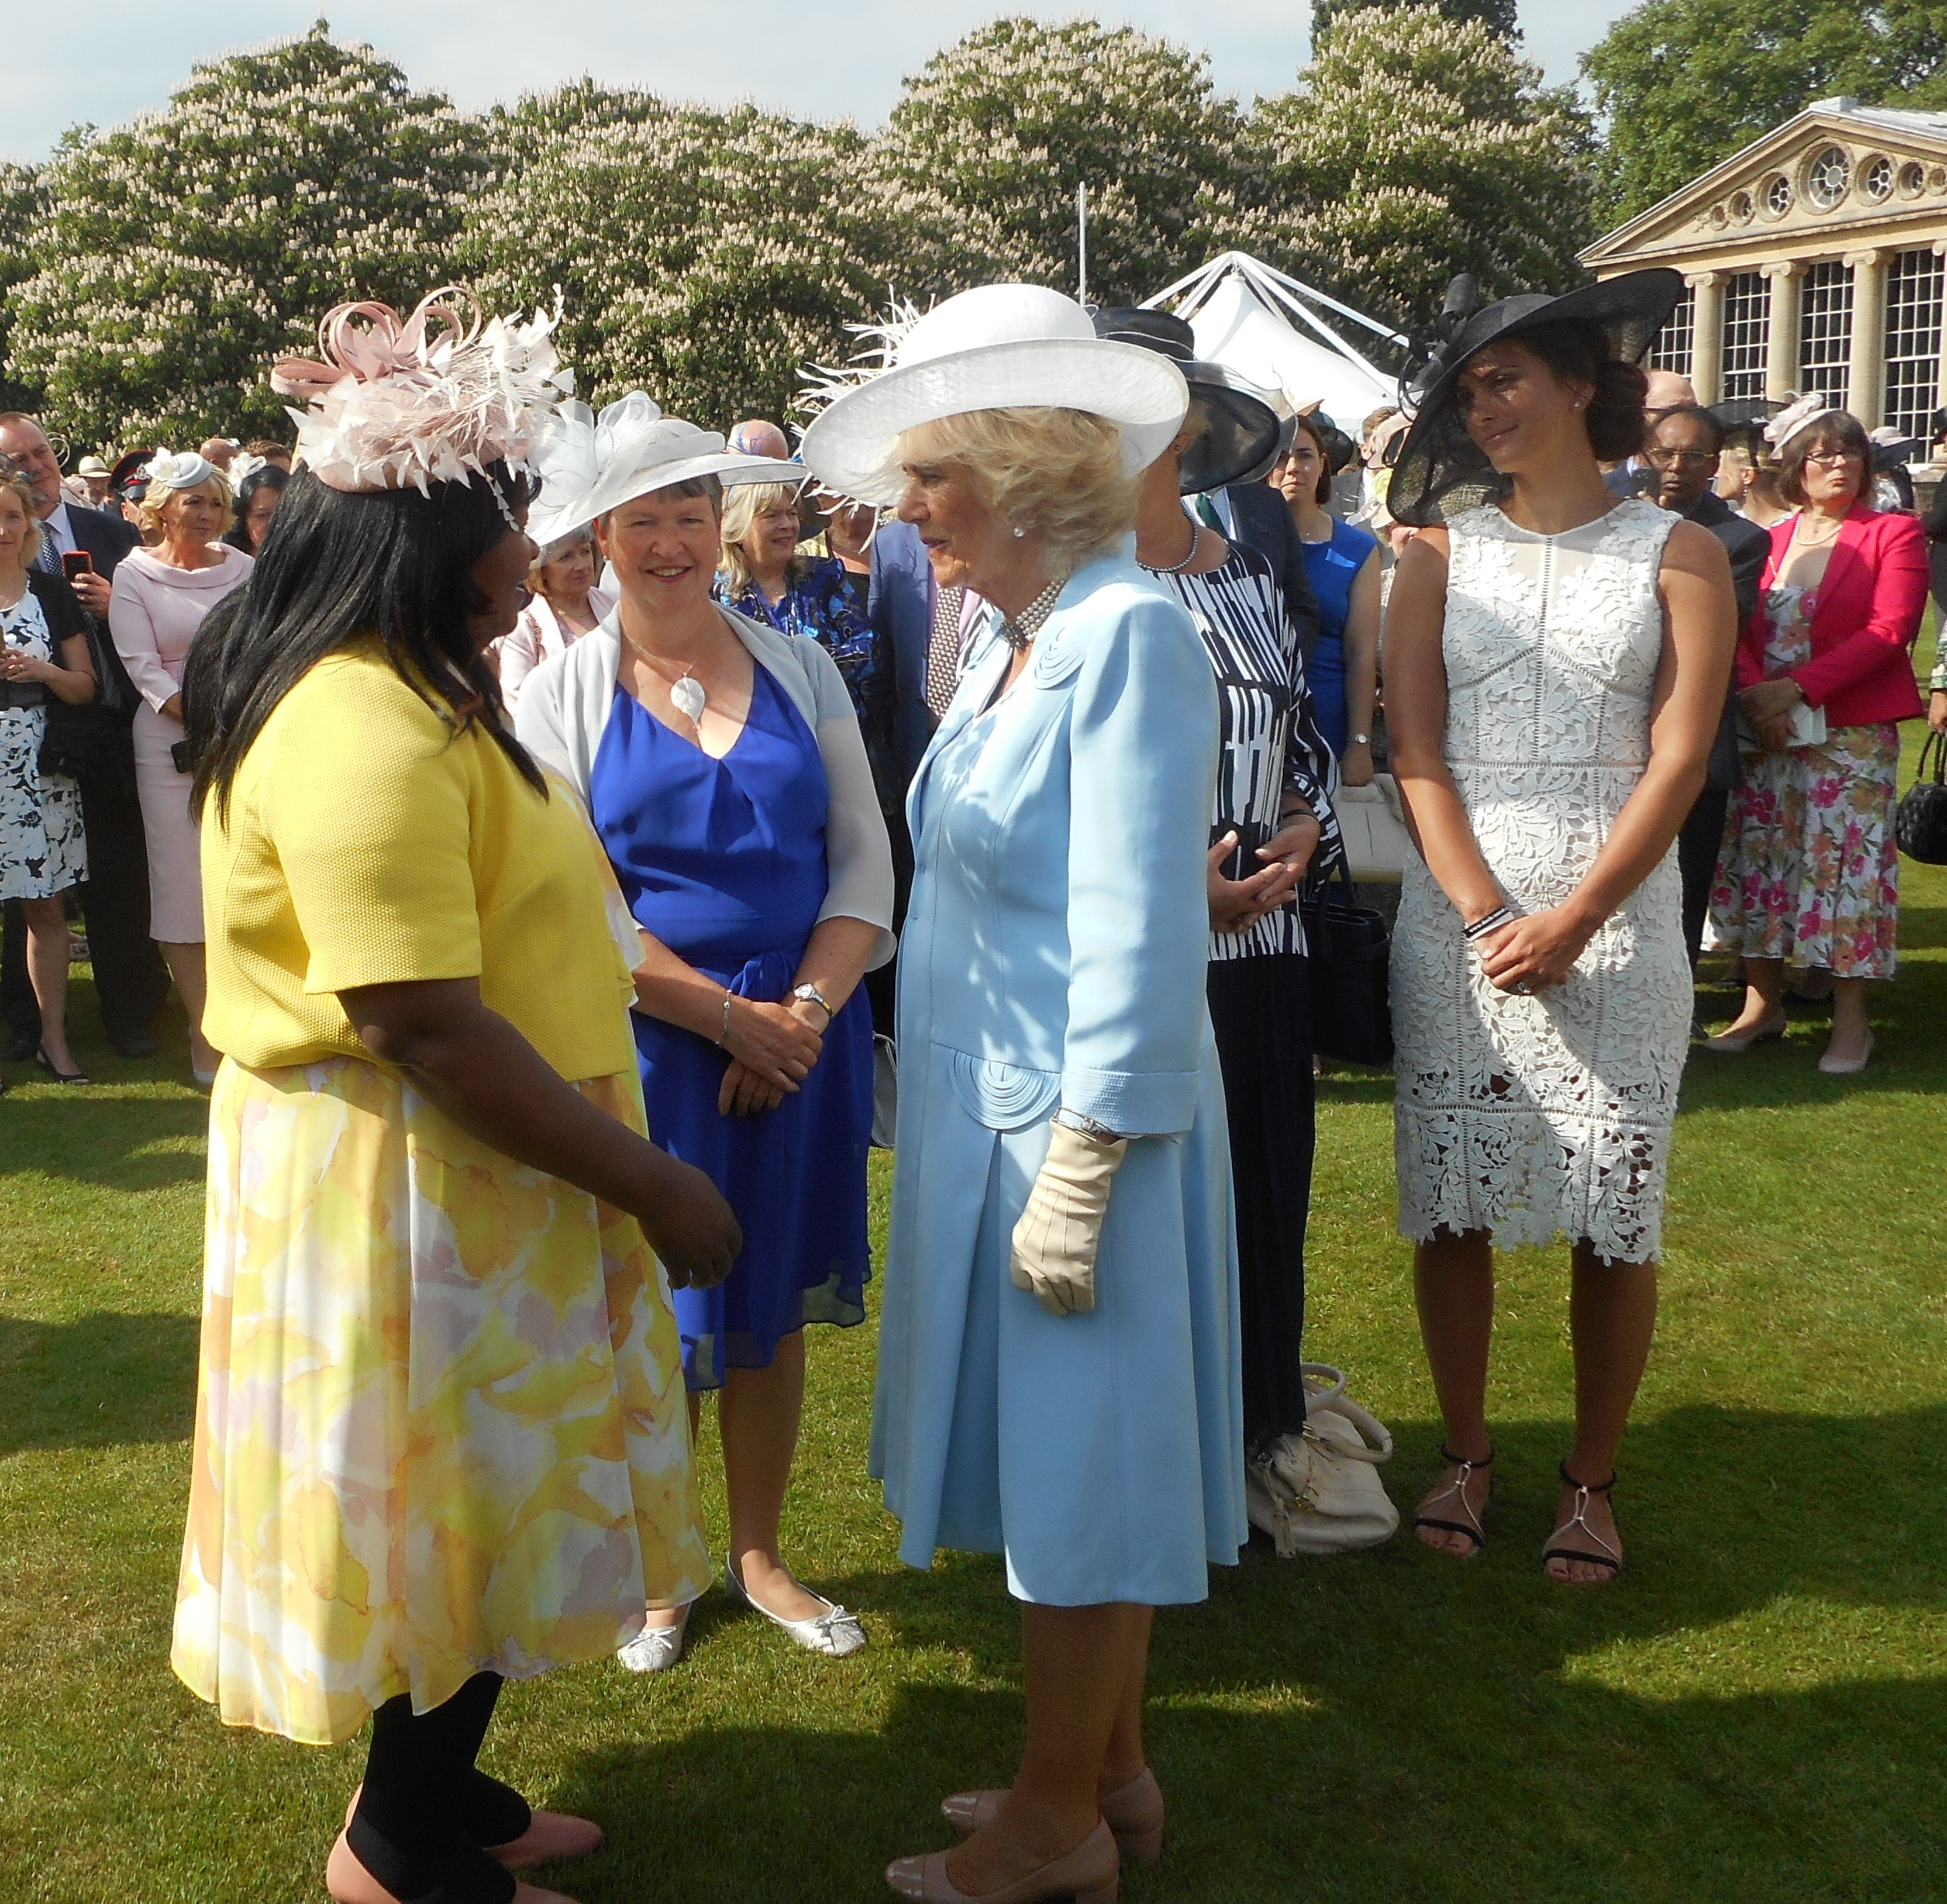 Meeting the Duchess of Cornwall